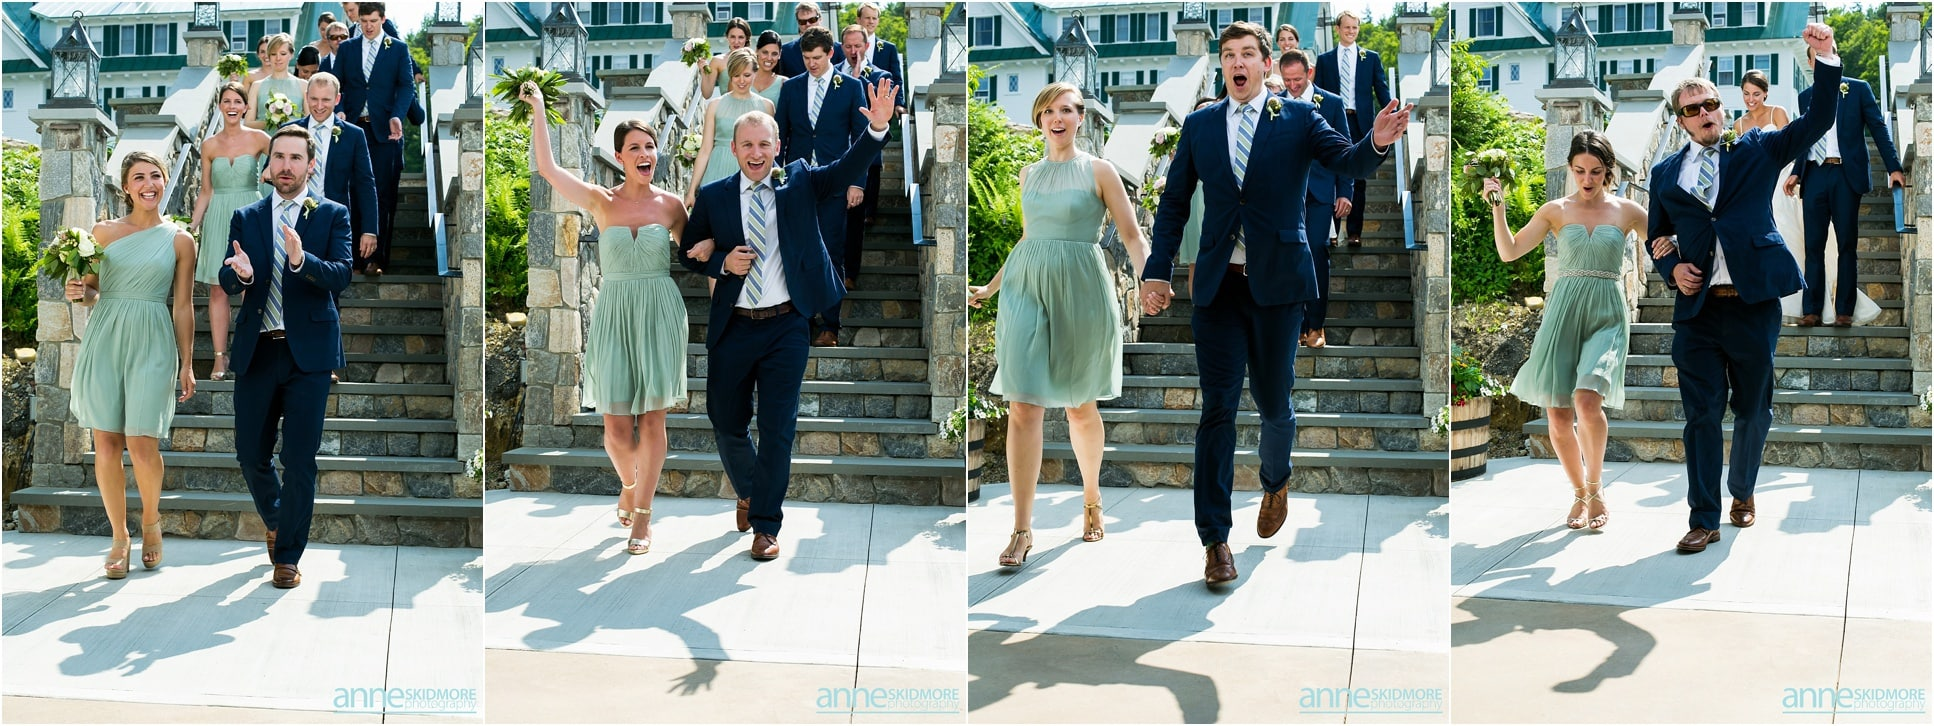 Eagle_Mountain_House_Wedding__061